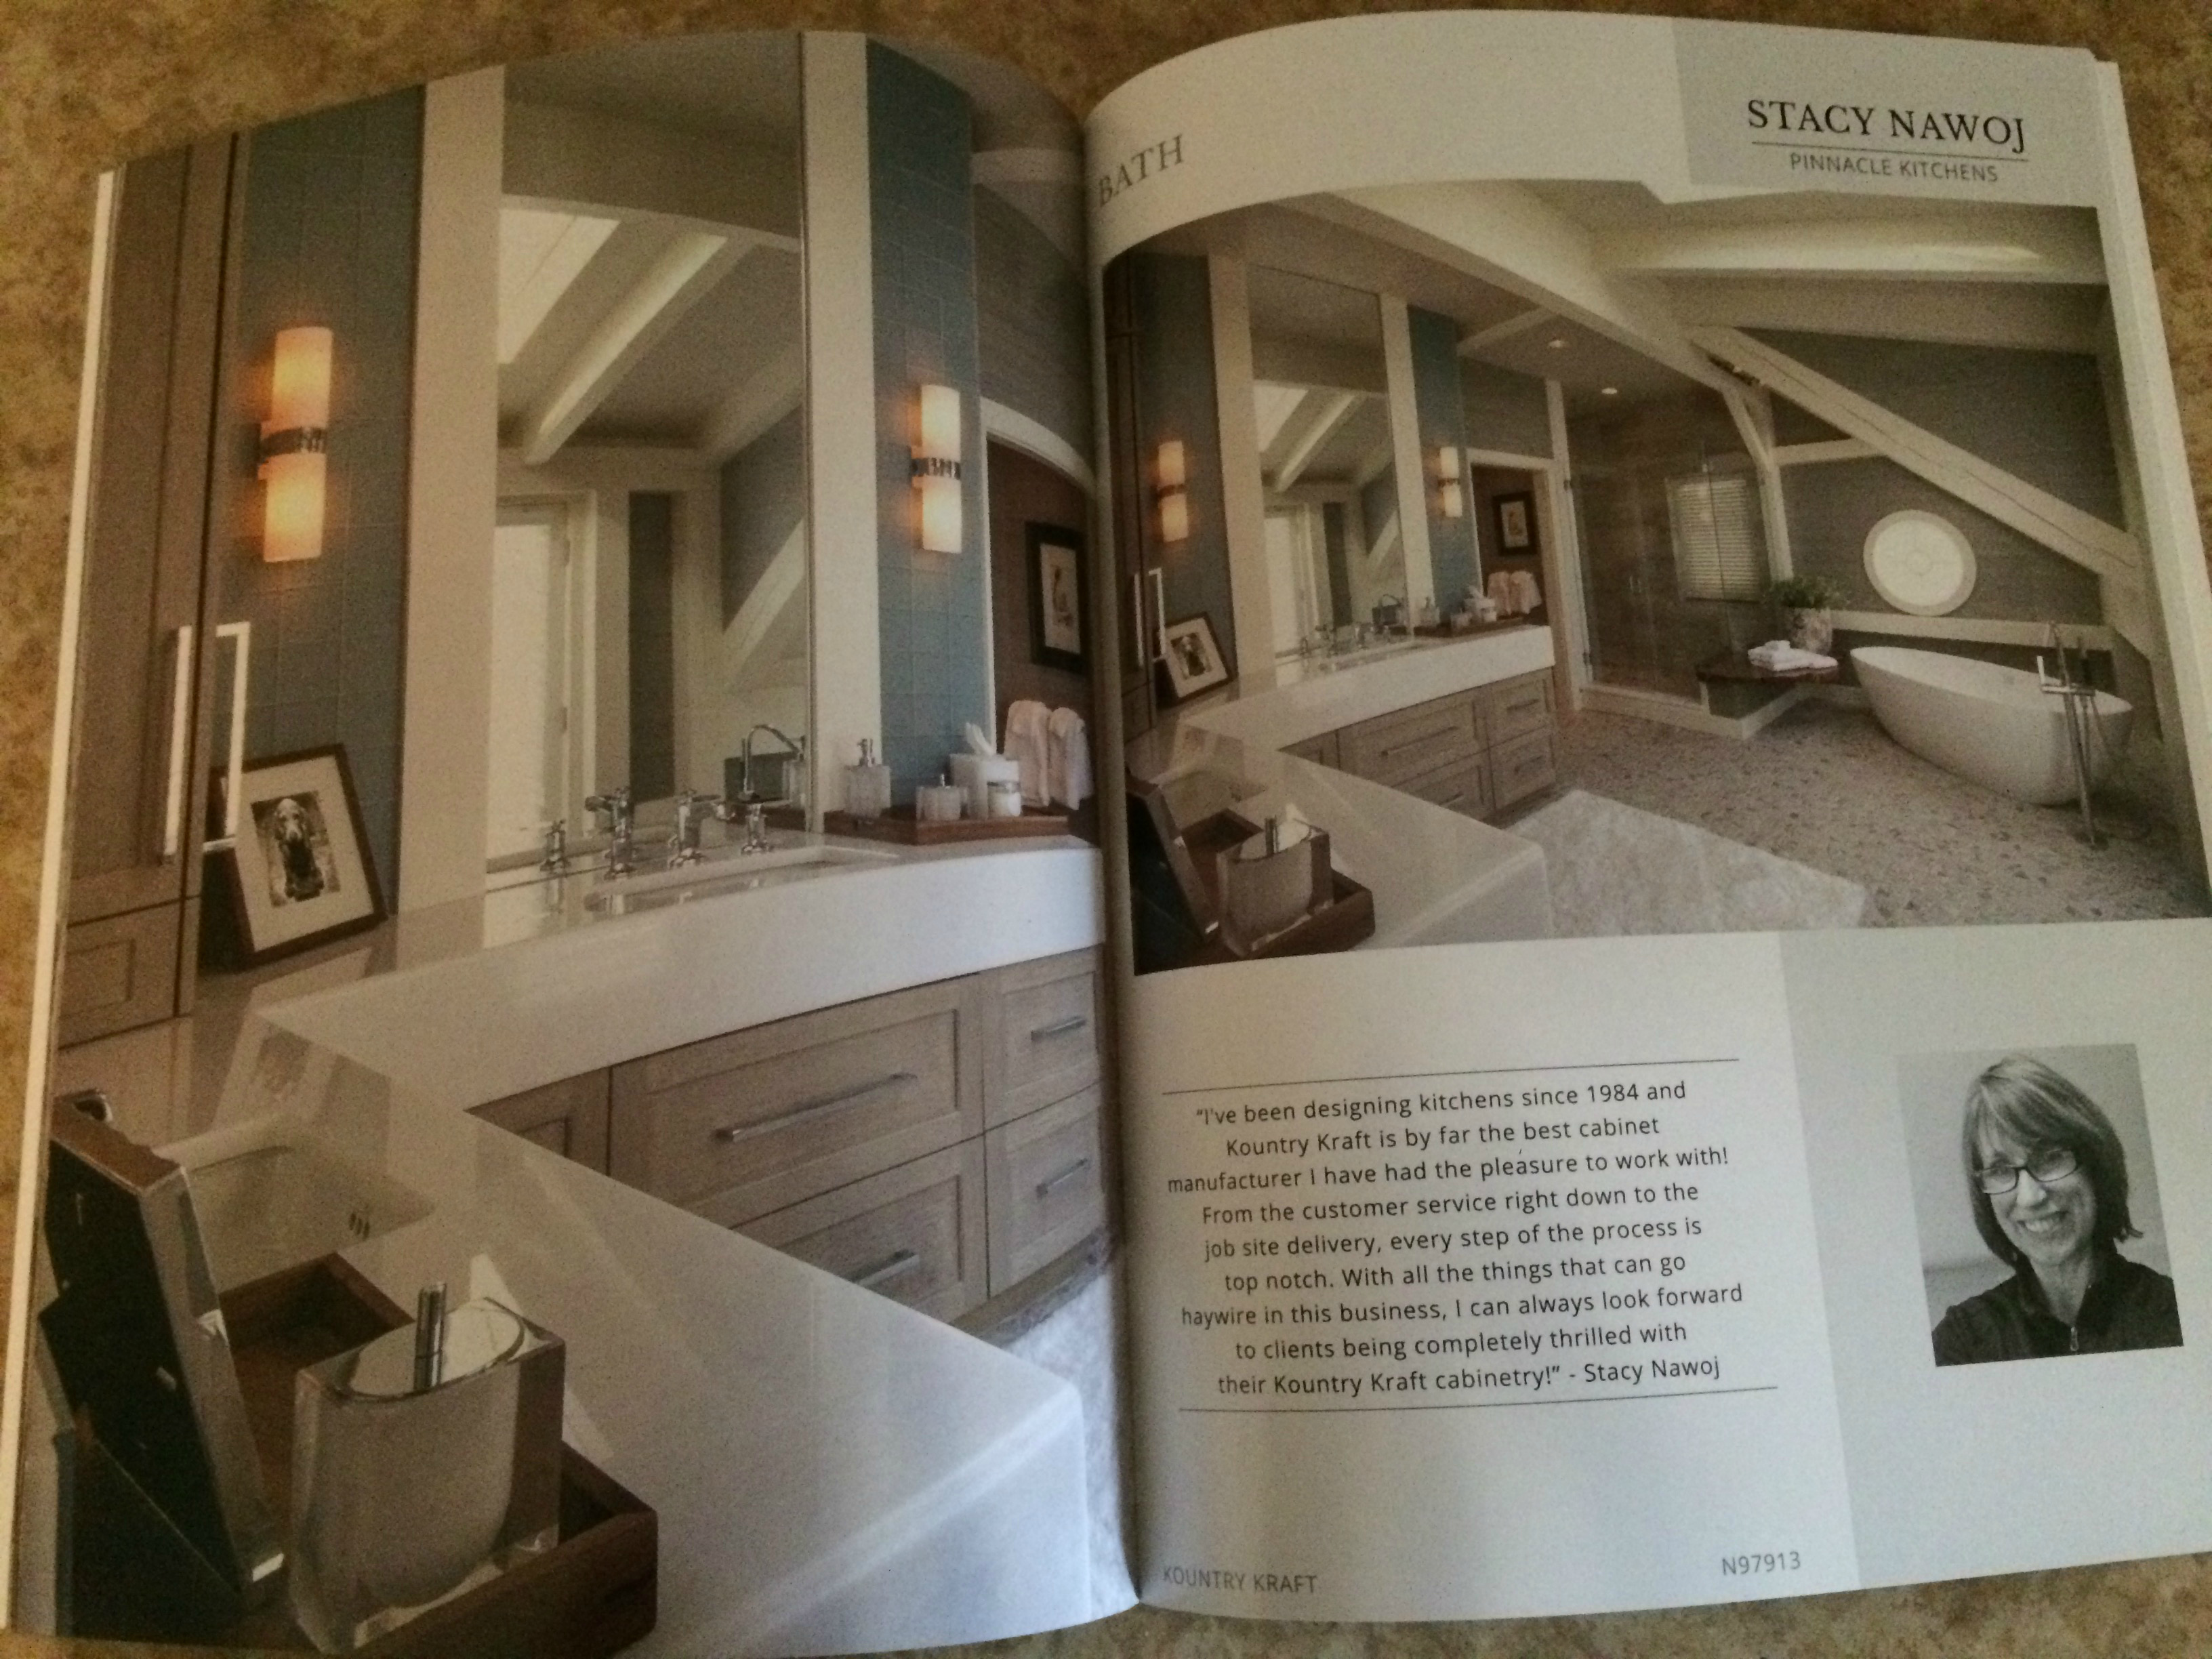 Bath design featured in Kountry Kraft catalog